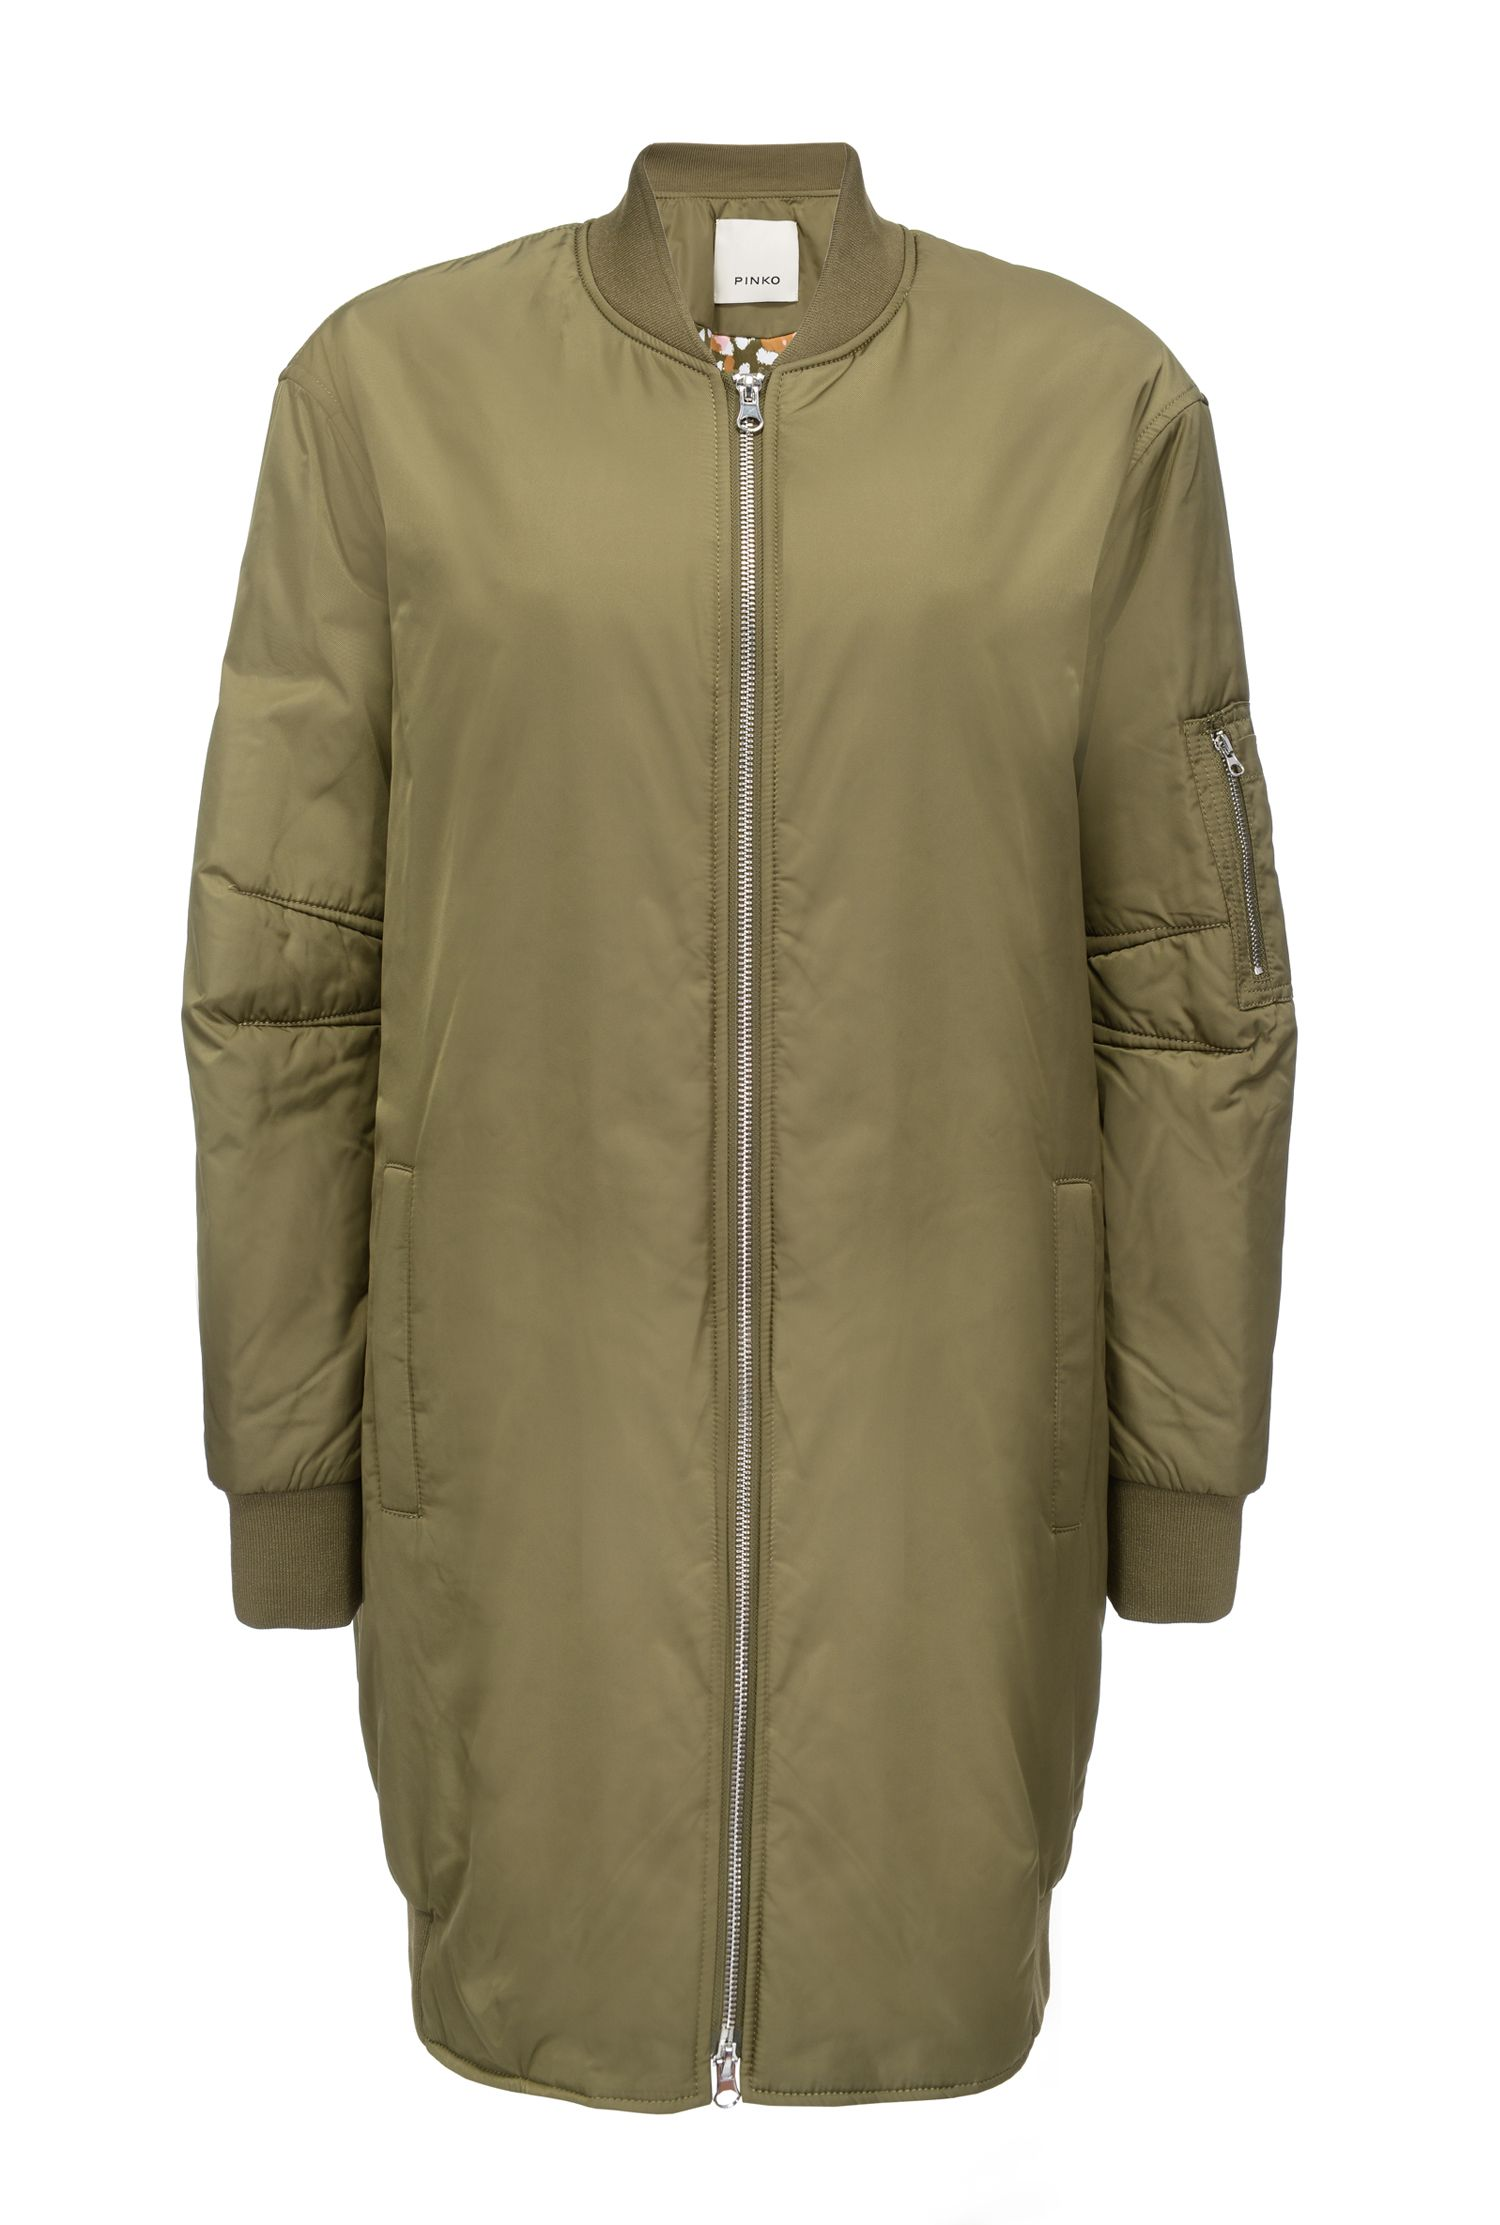 detailed look 51c29 46d04 Pin on Spring Summer 18 Active Outerwear